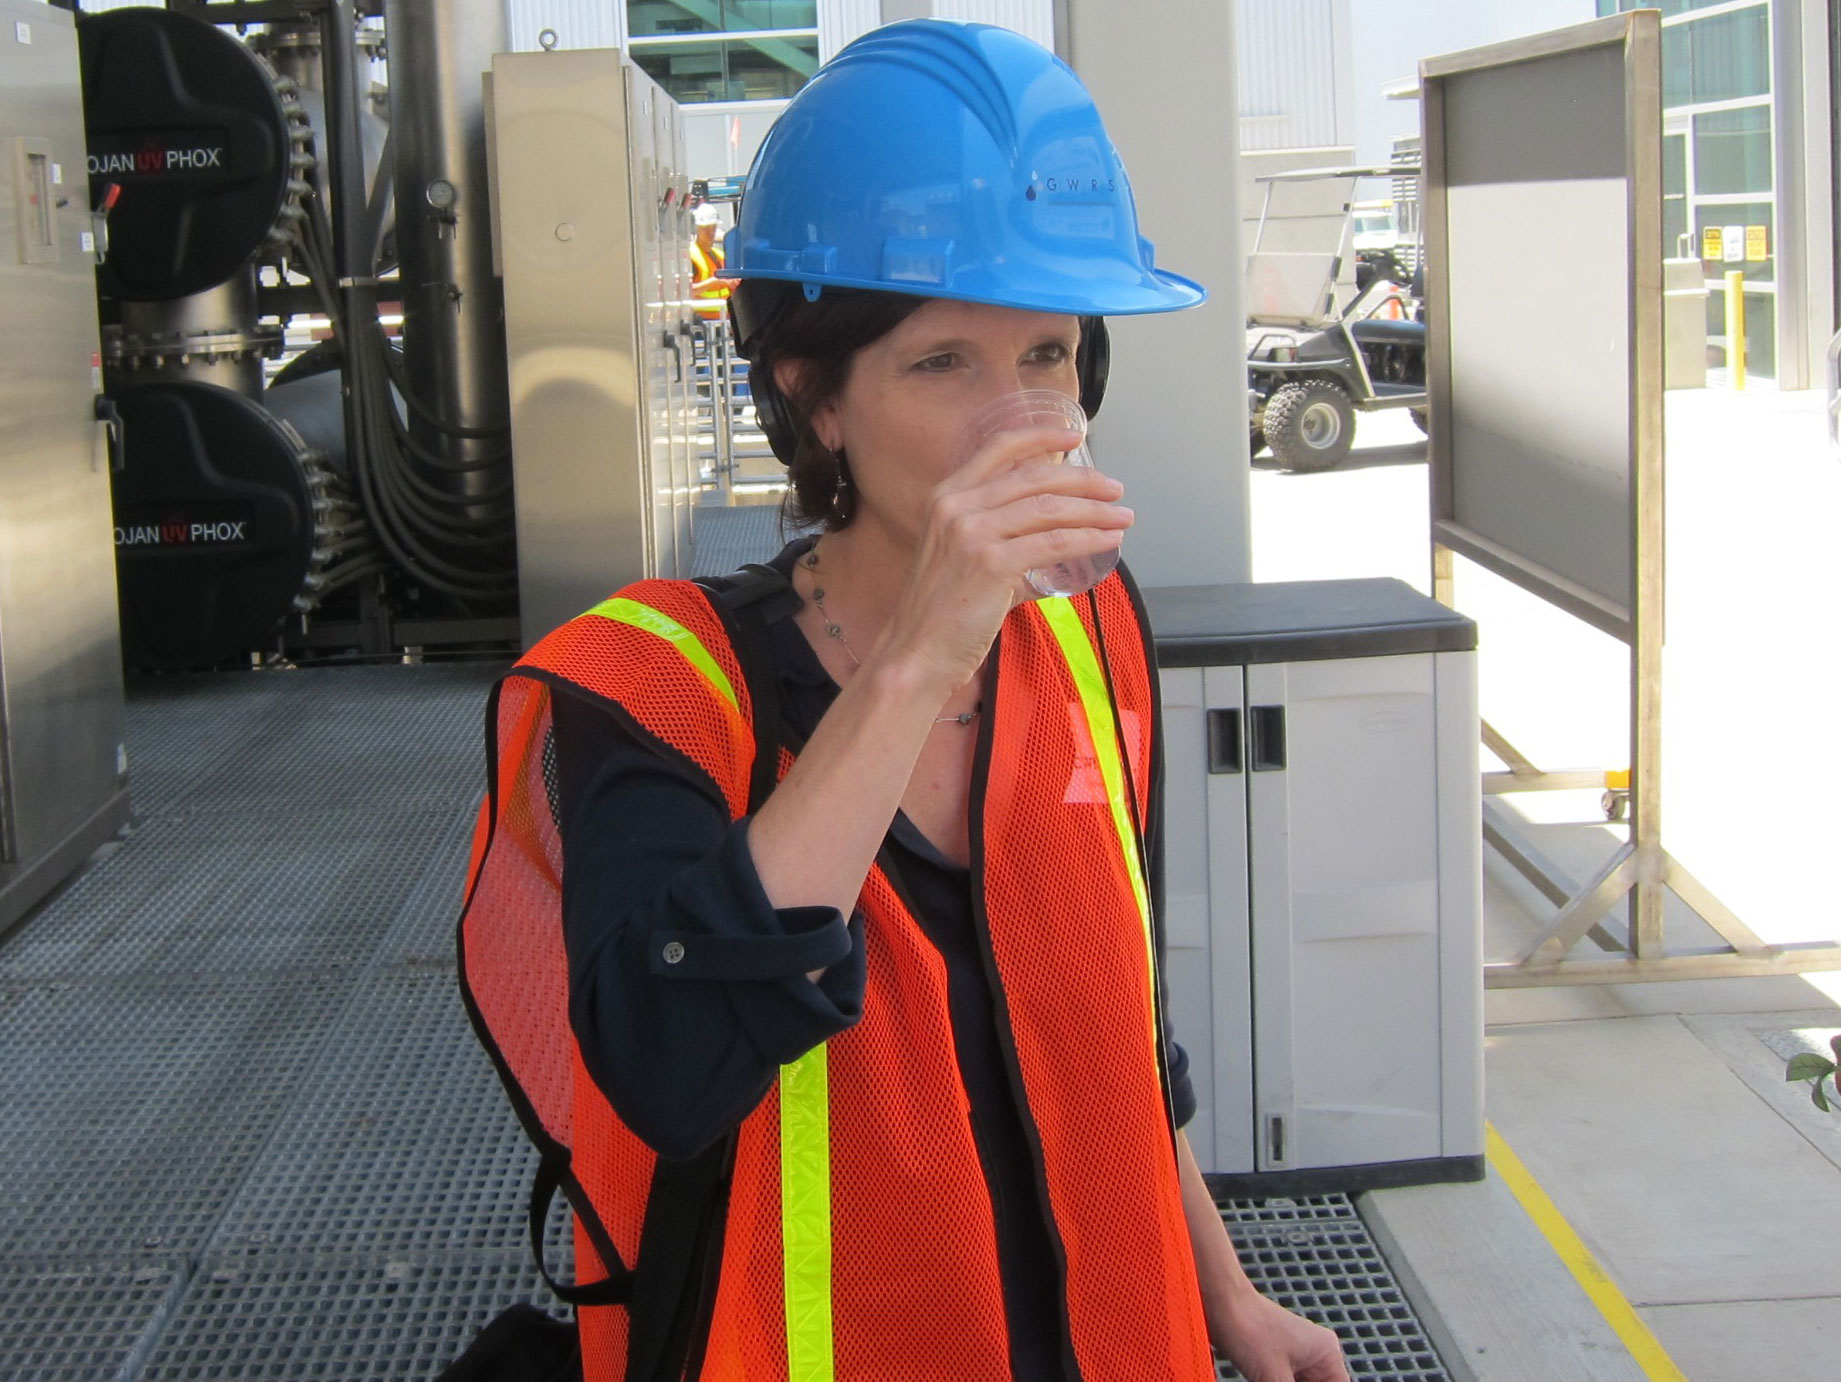 0625-Amy -drinks -treated -wastewater -P